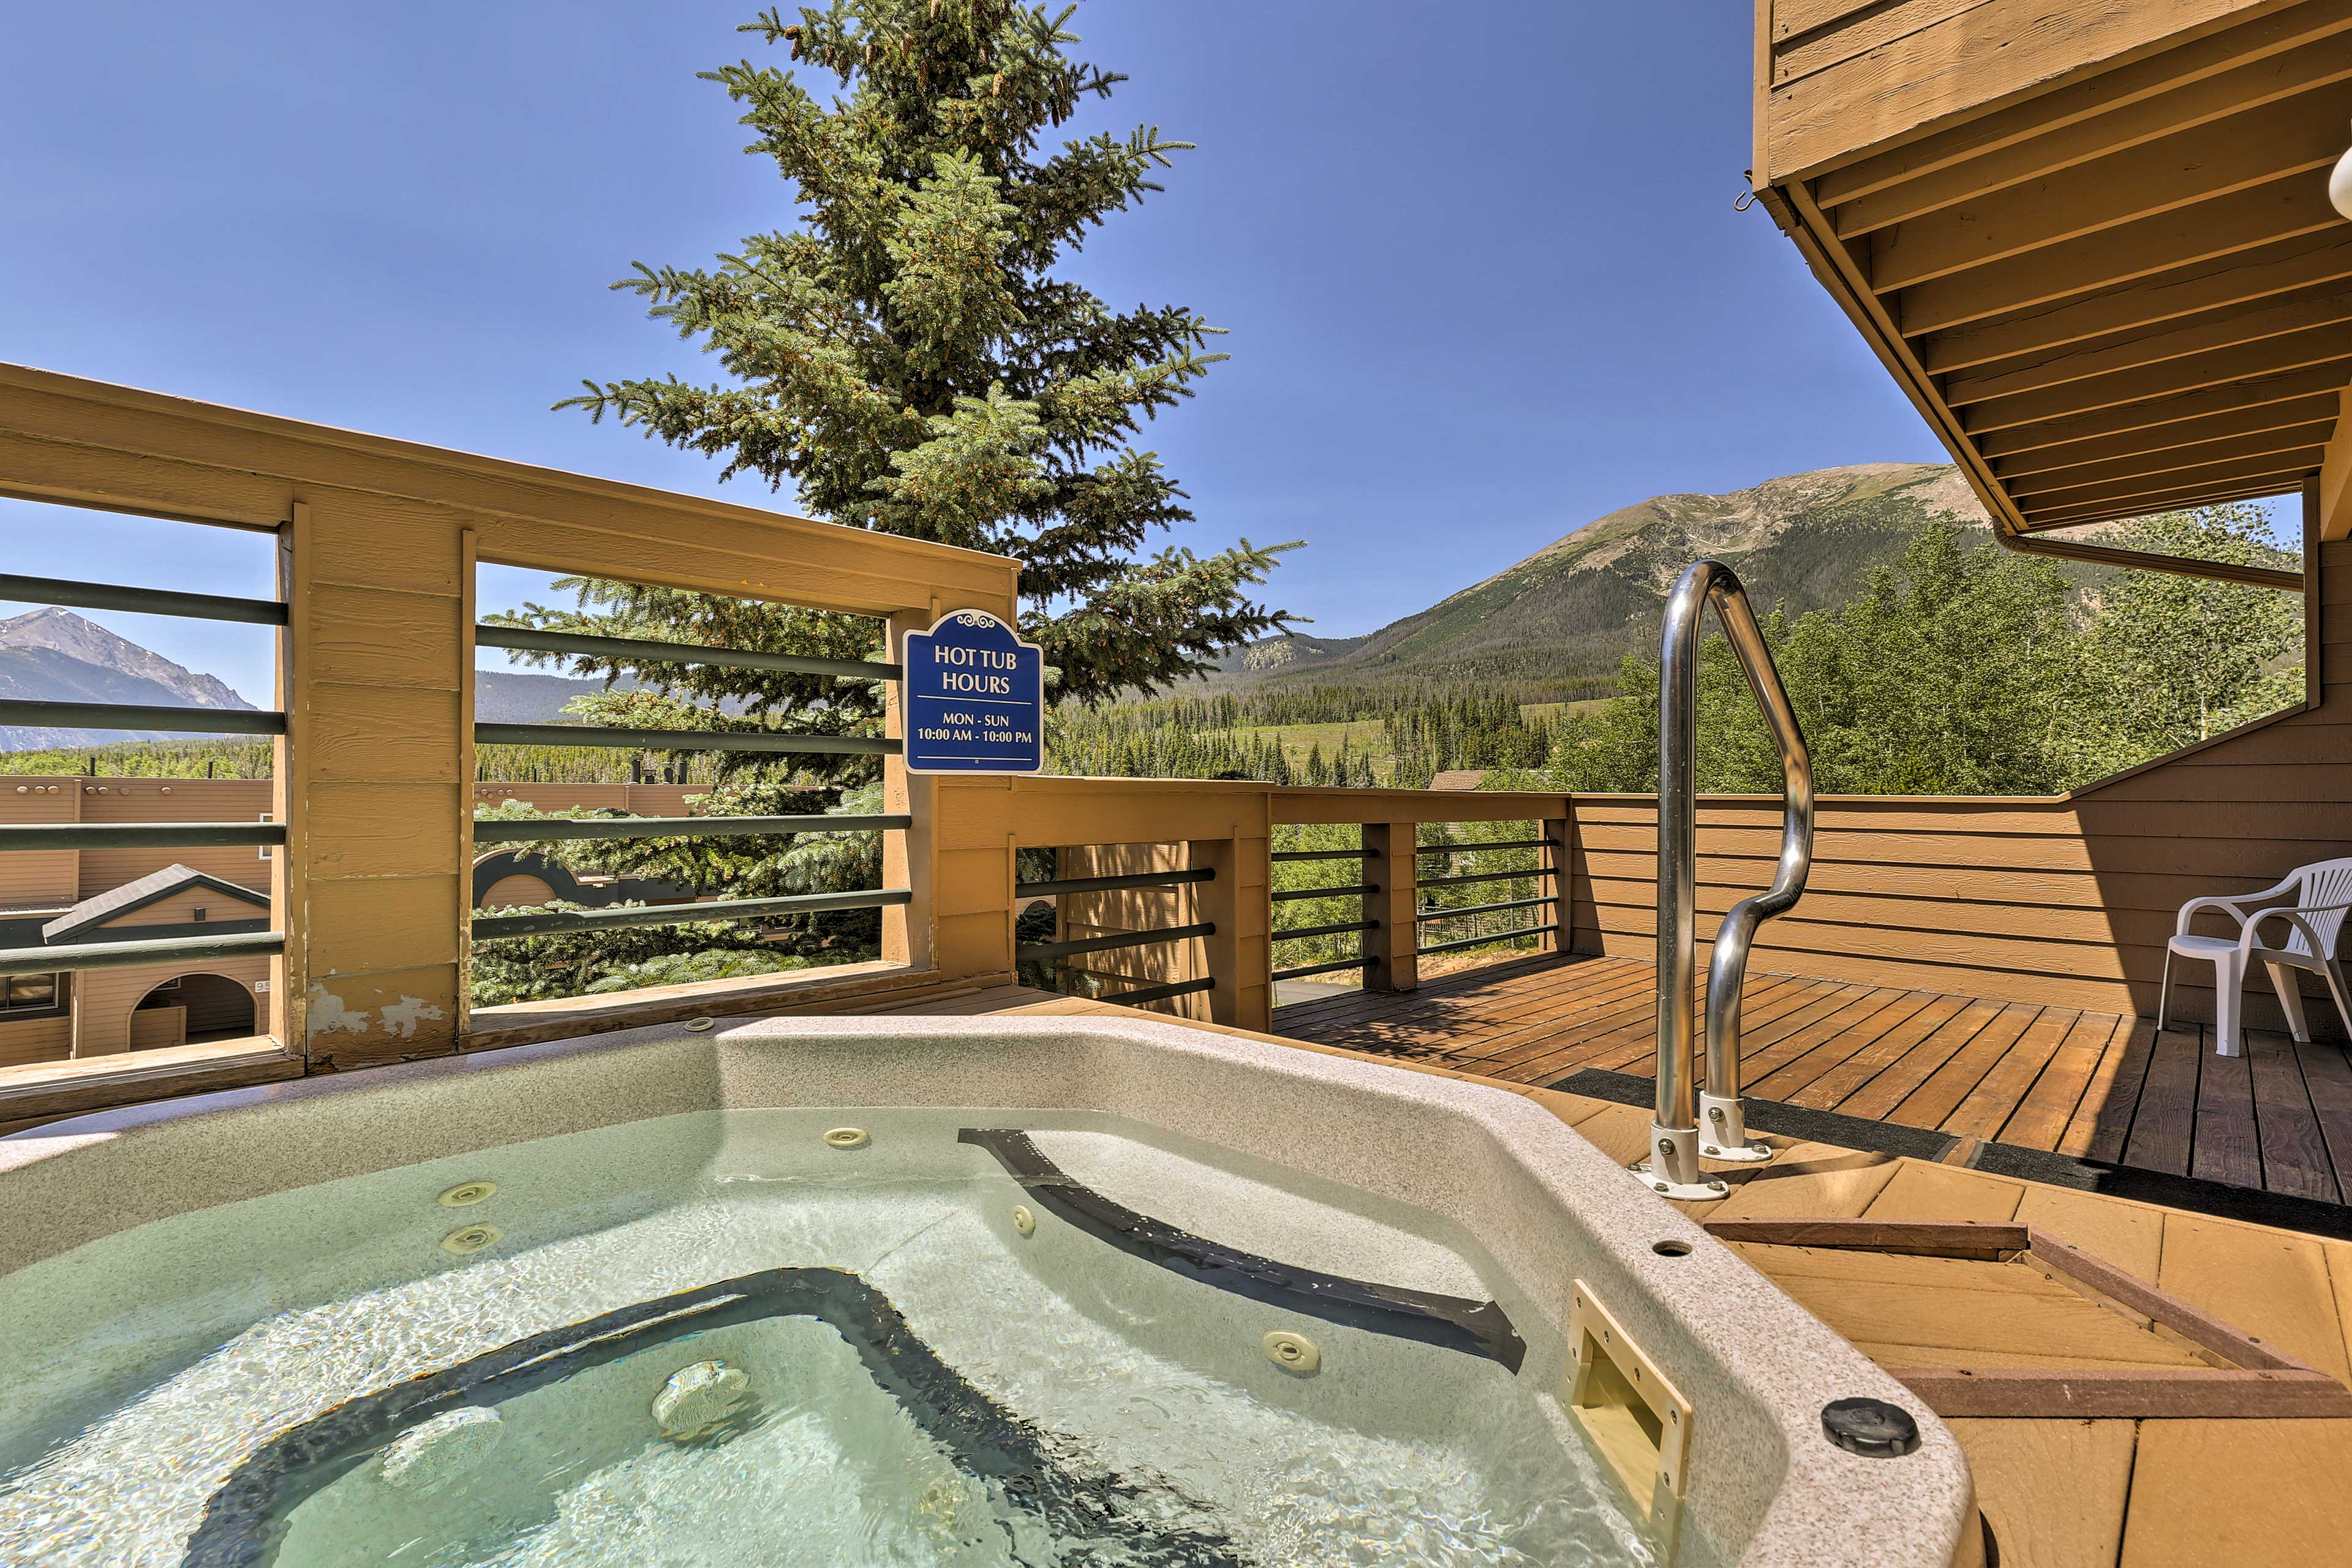 With a prime location, hot tub, and mountain views, this place has it all!